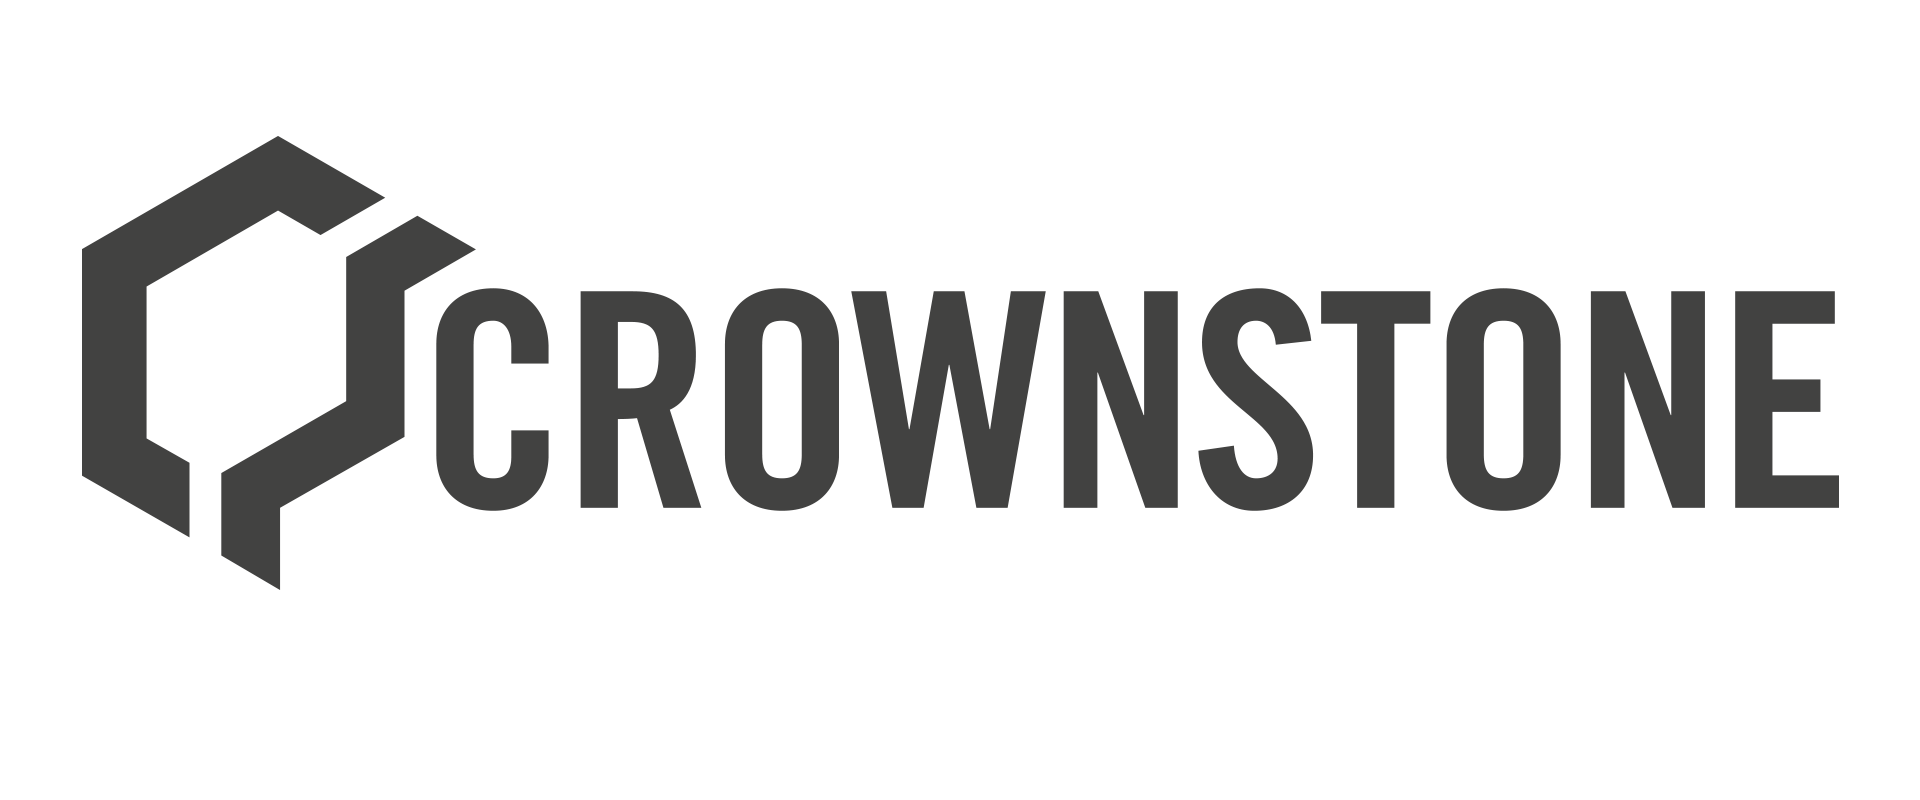 Crownstone Construction